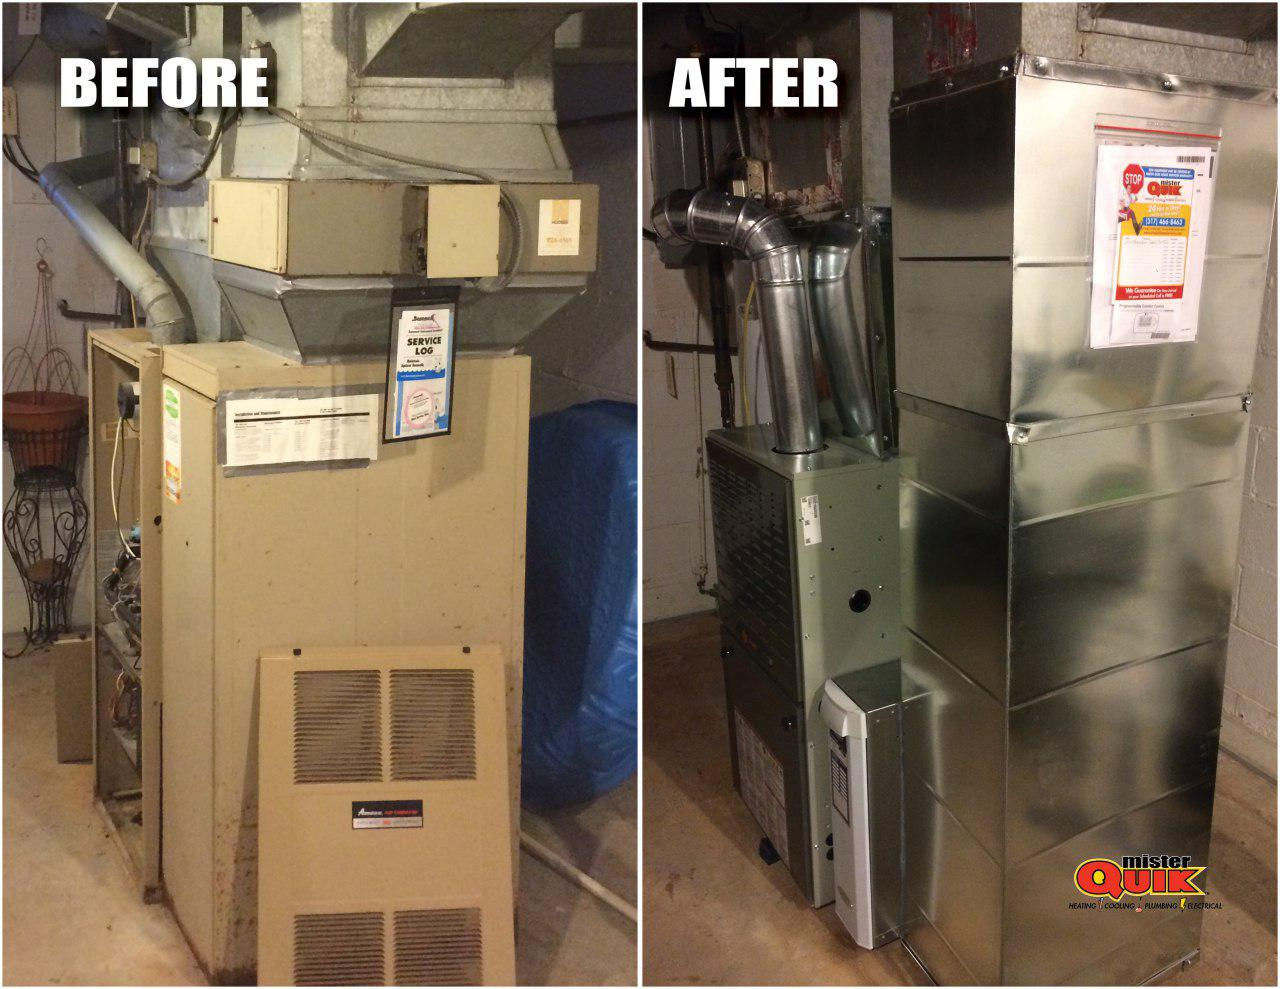 Before and After HVAC System